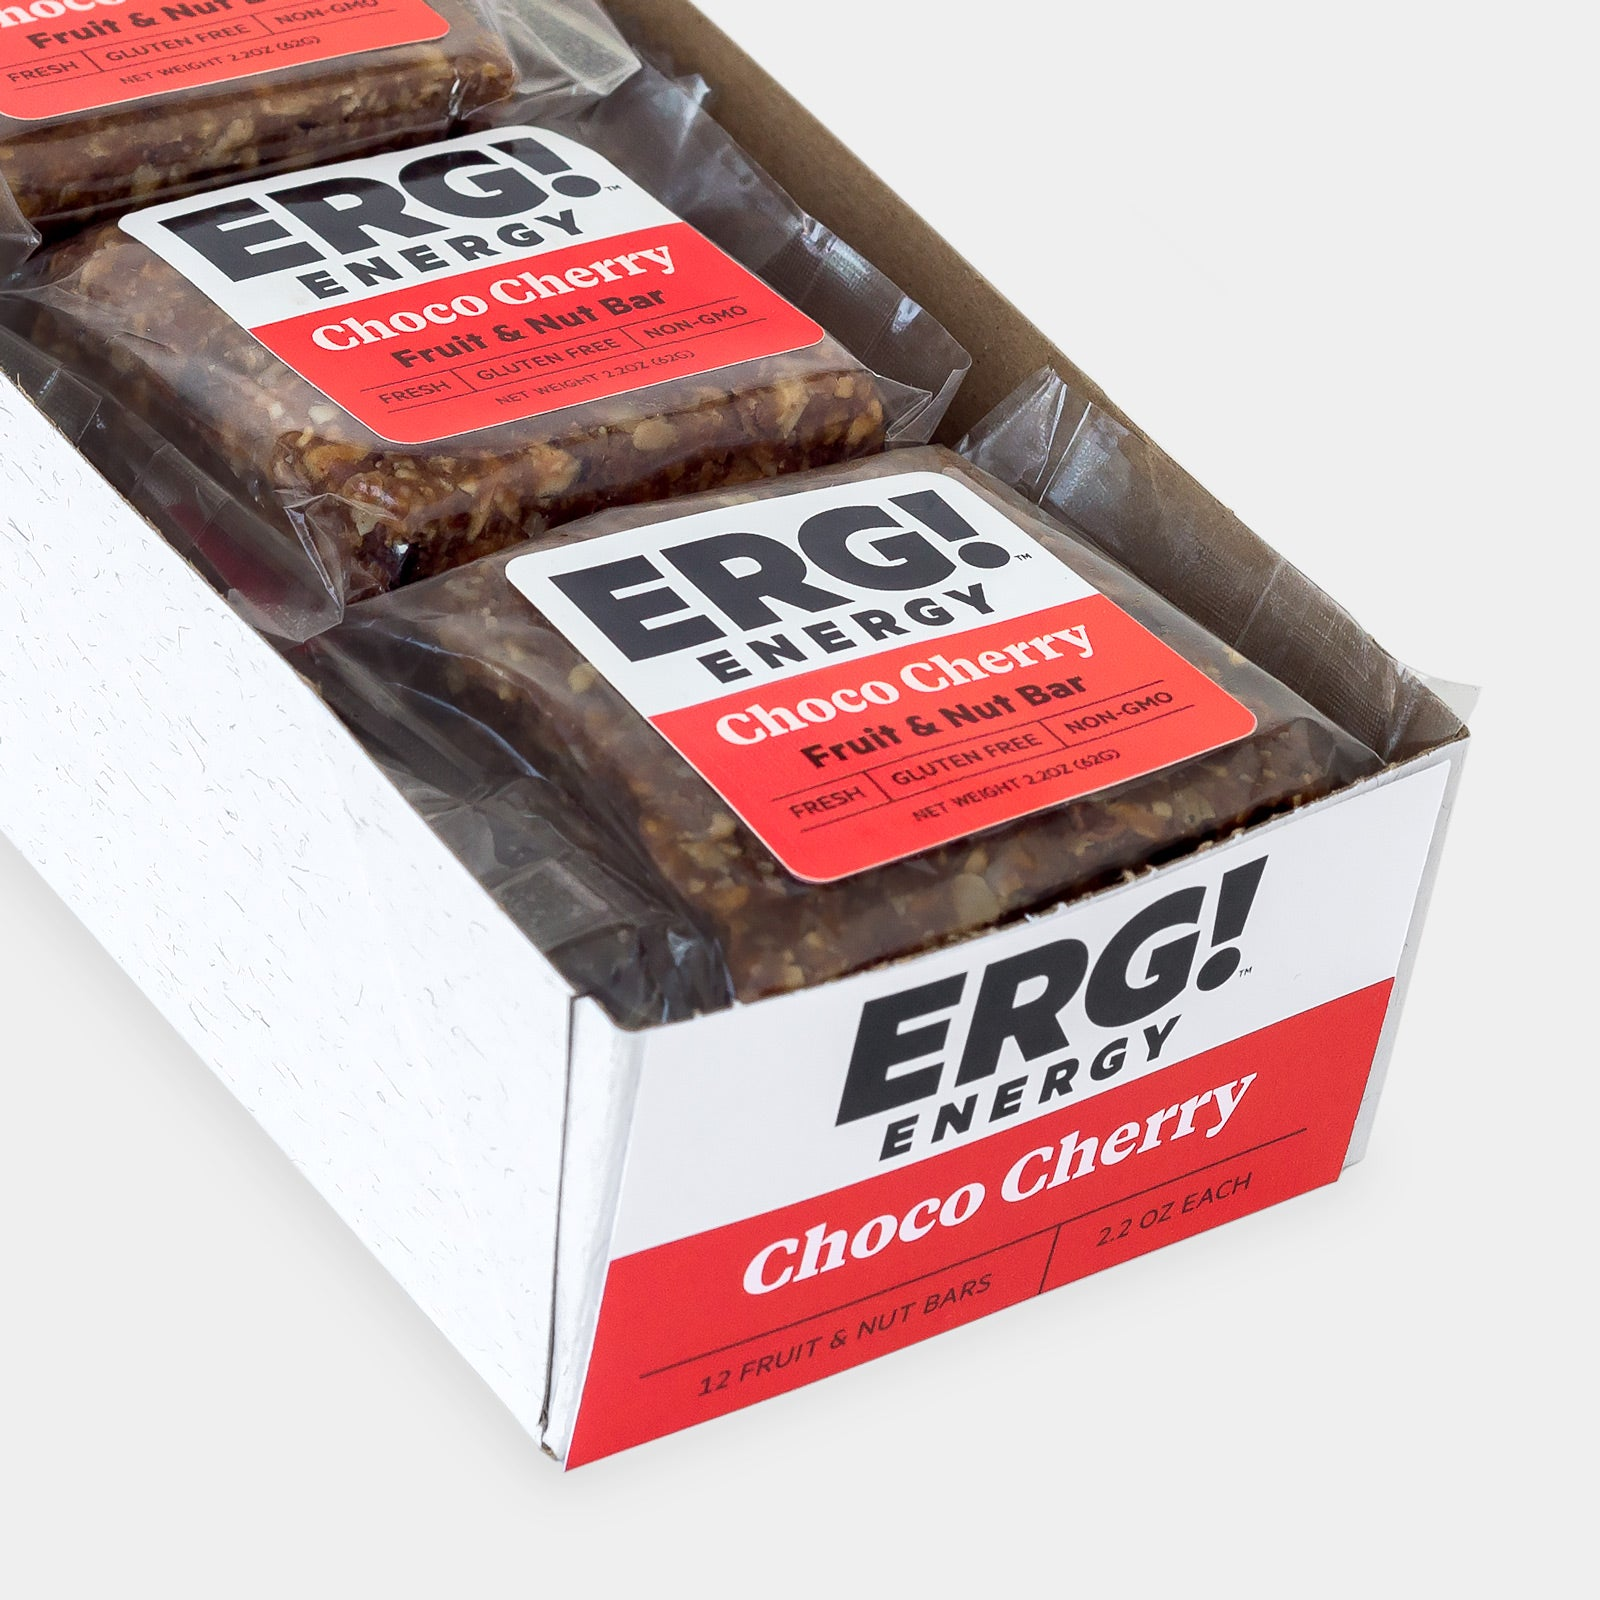 Choco Cherry ERG! - Box of 12 Bars